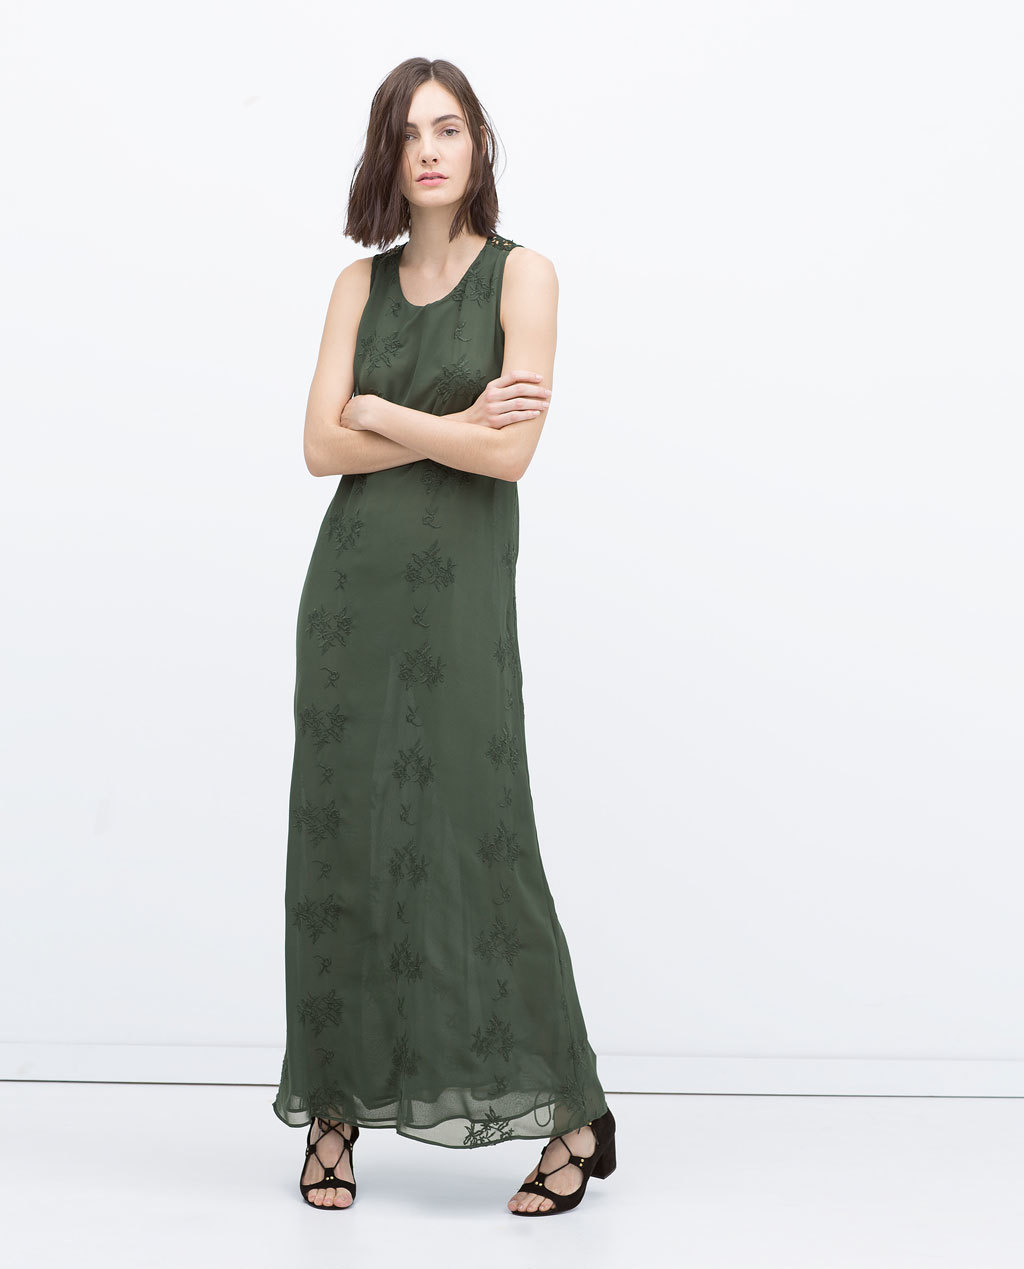 Long Dress - pattern: plain; sleeve style: sleeveless; style: maxi dress; length: ankle length; predominant colour: khaki; occasions: casual, evening; fit: body skimming; neckline: scoop; fibres: polyester/polyamide - 100%; sleeve length: sleeveless; texture group: sheer fabrics/chiffon/organza etc.; pattern type: fabric; embellishment: embroidered; season: s/s 2015; wardrobe: highlight